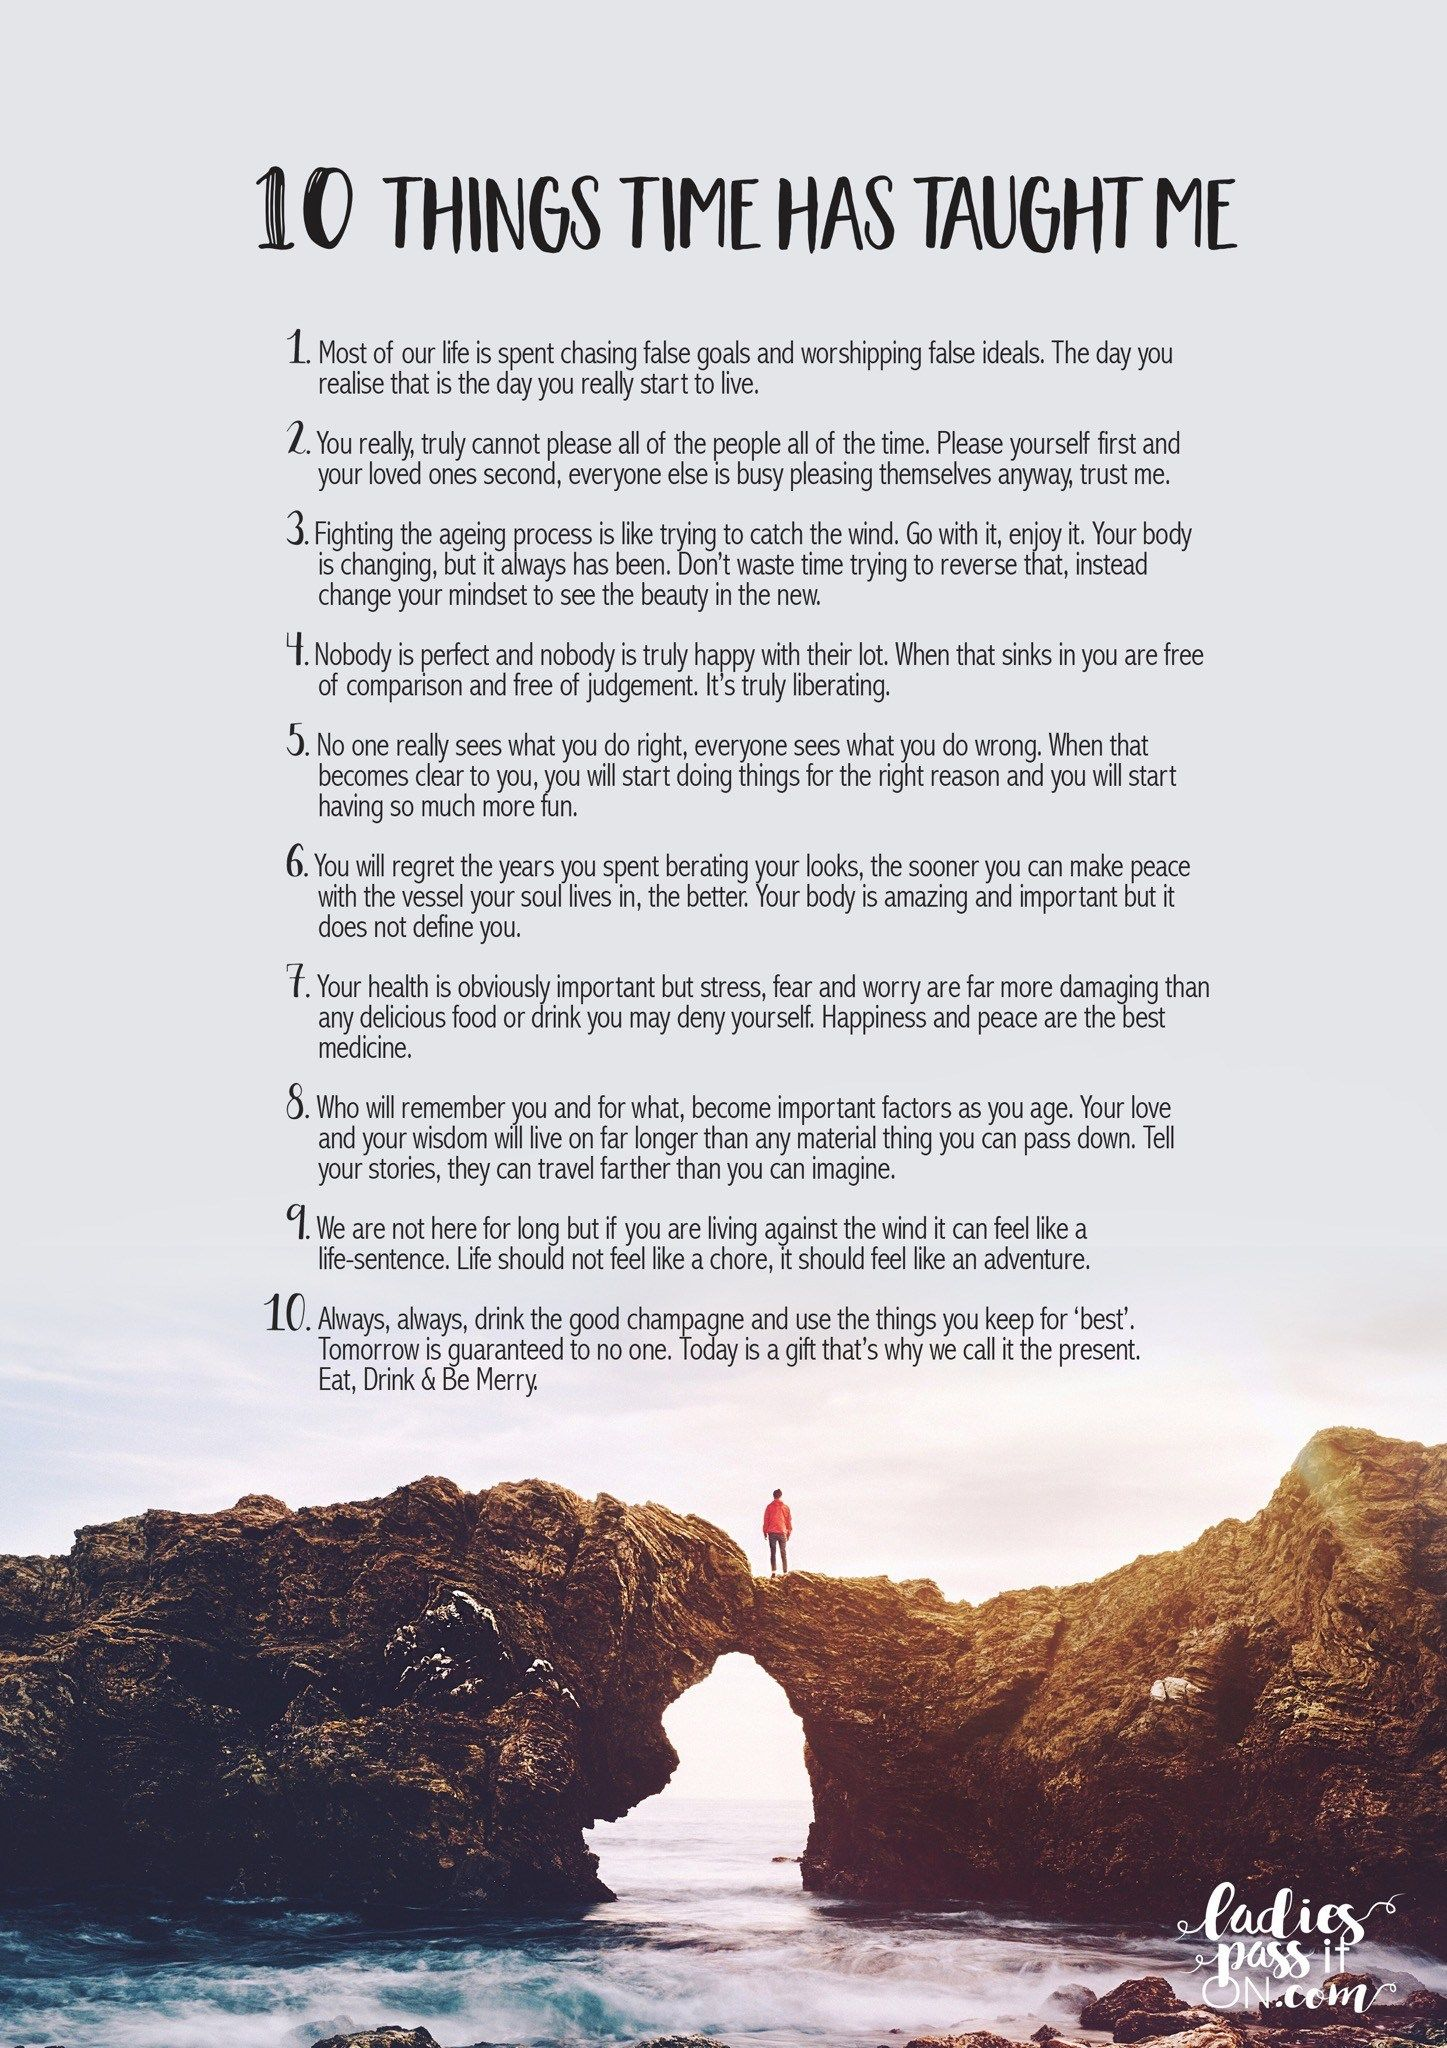 10 Things Time Has Taught Me